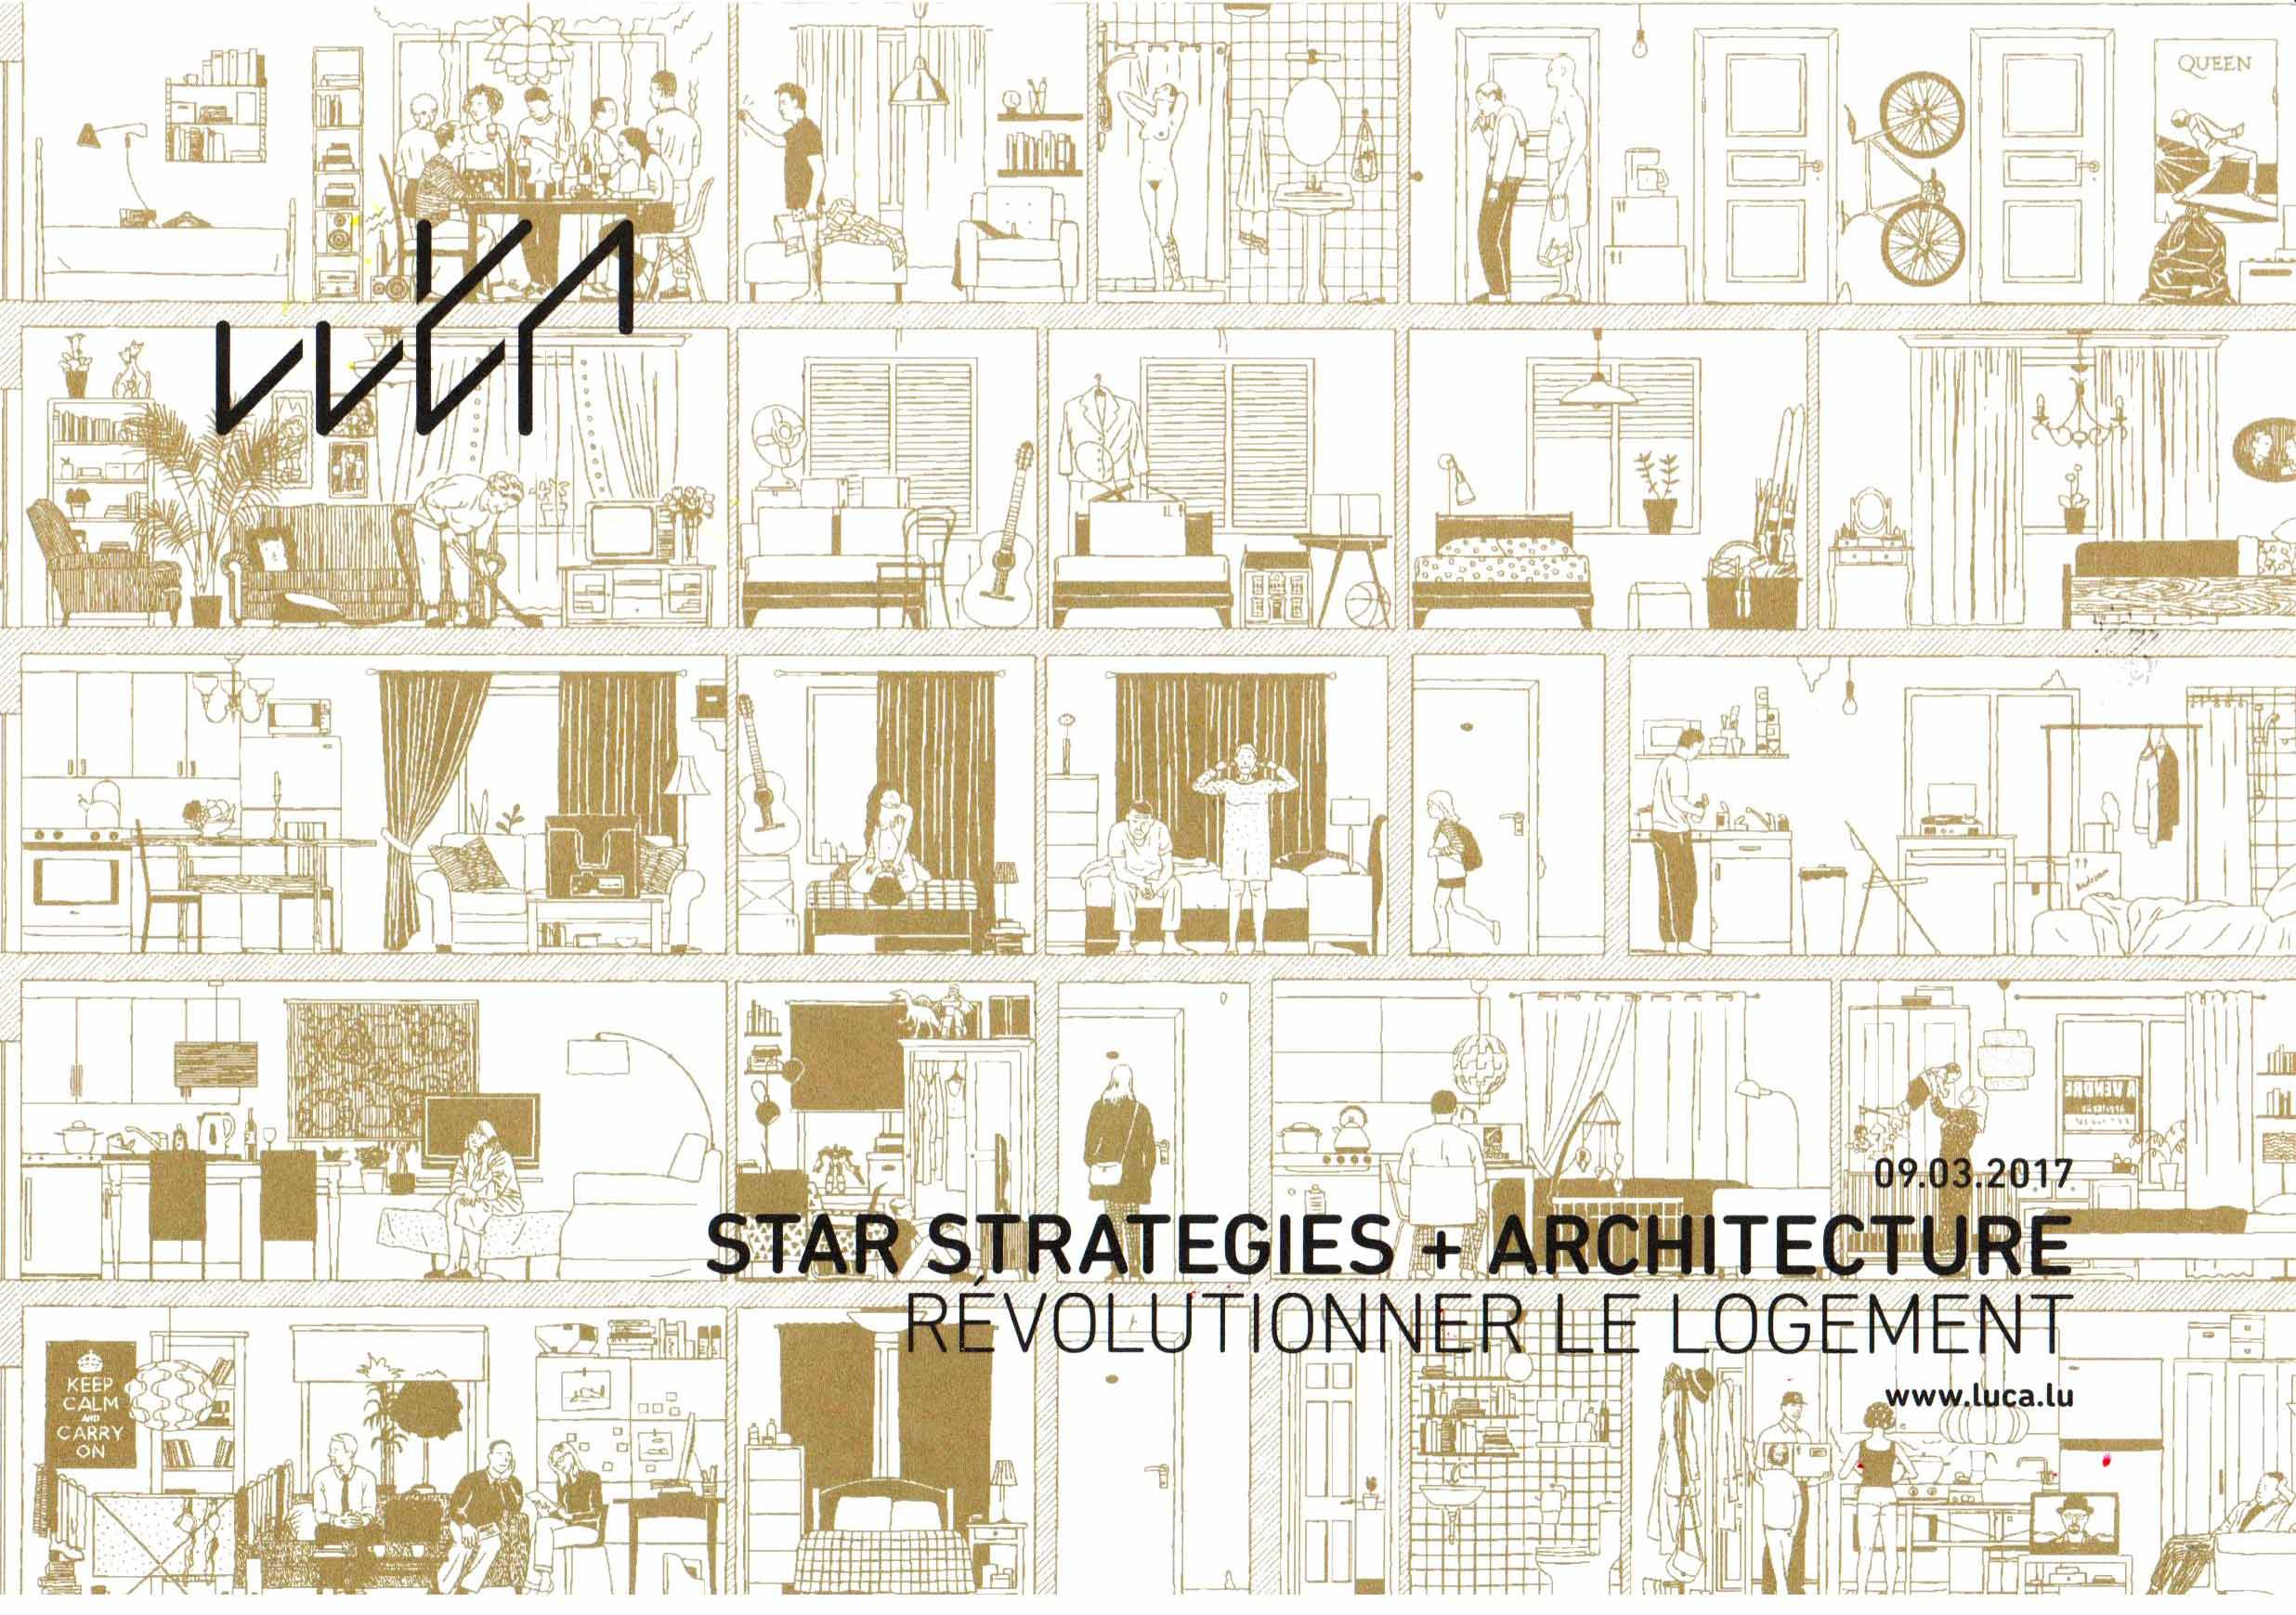 STAR Public Lecture at the LUCA –Luxembourg Centre for Architecture in Luxembourg City